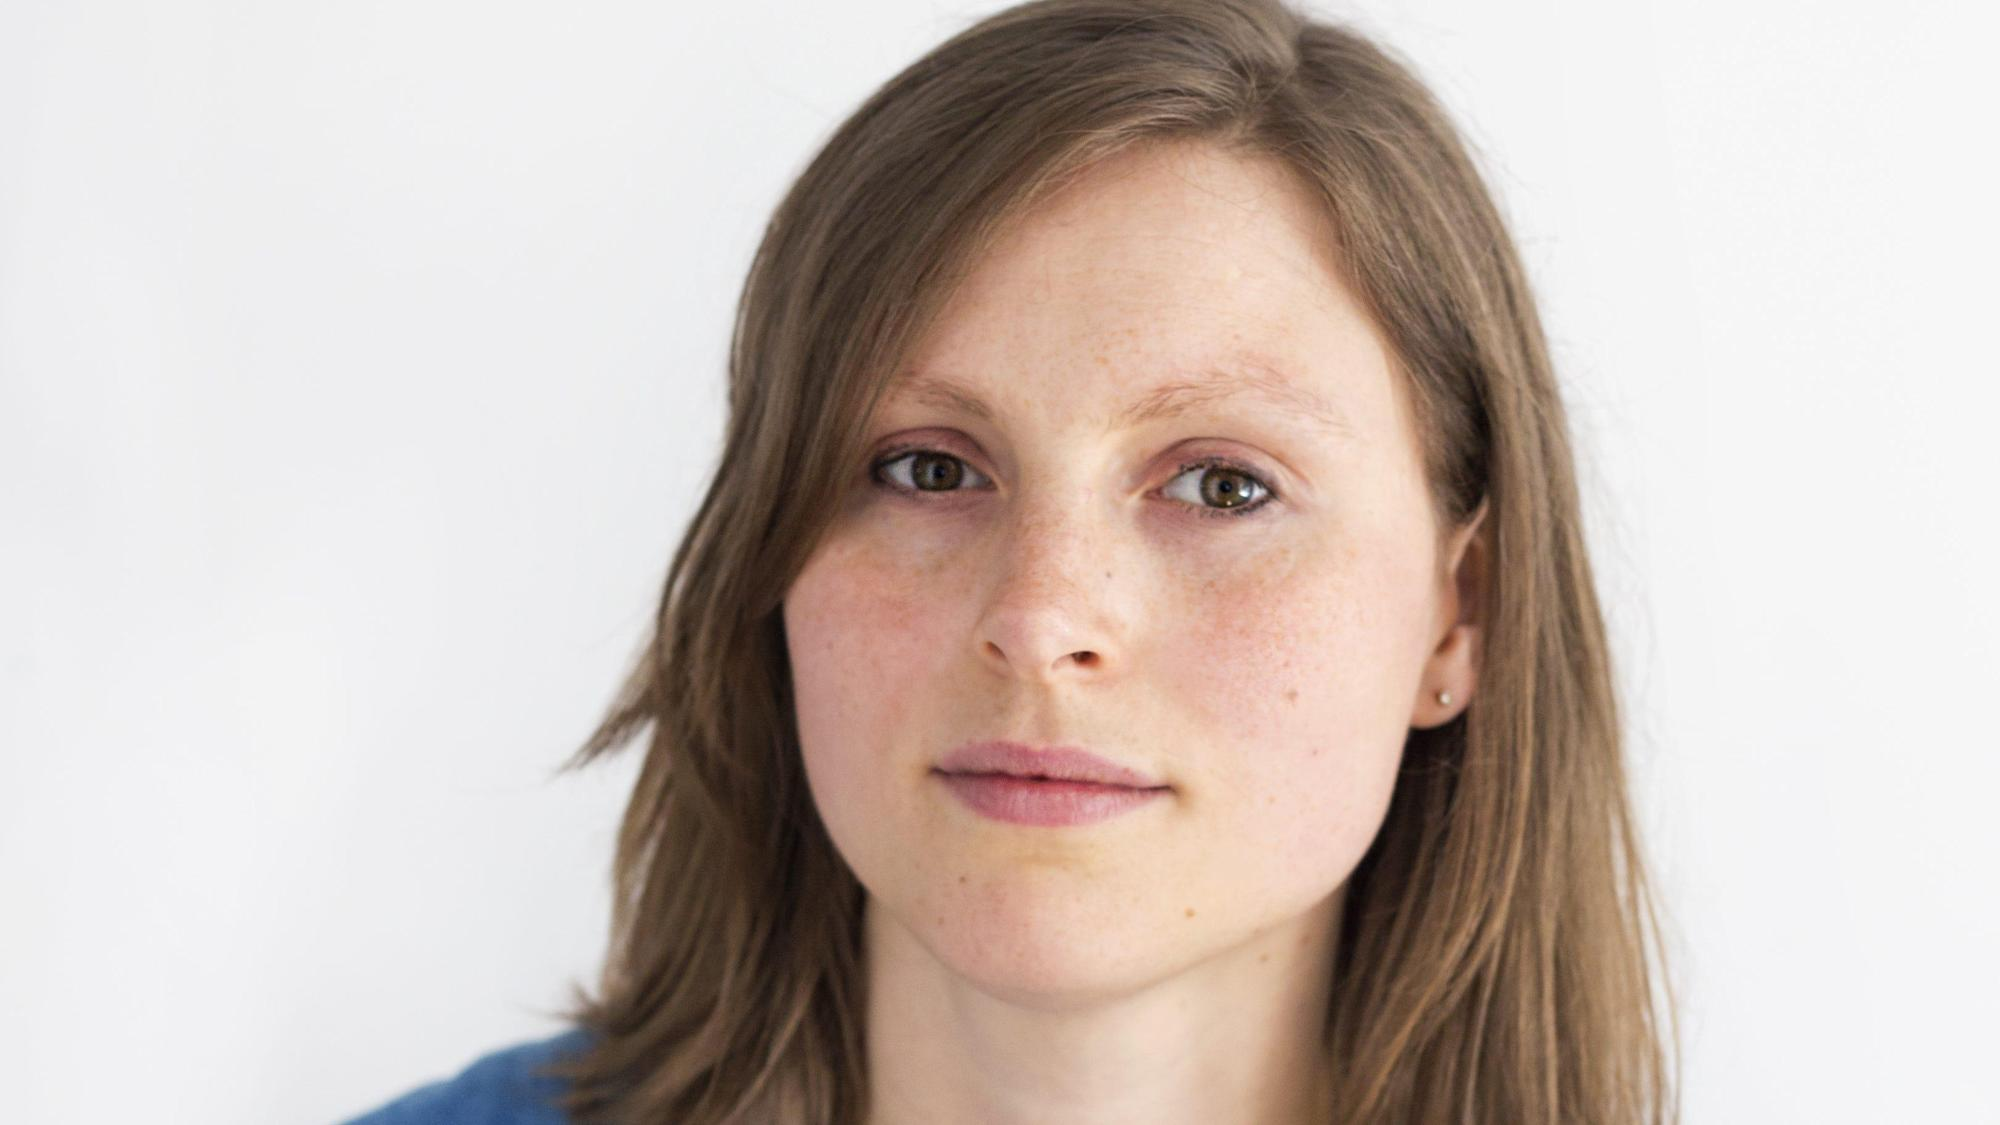 Longlist unveiled for £10,000 RSL Ondaatje Prize